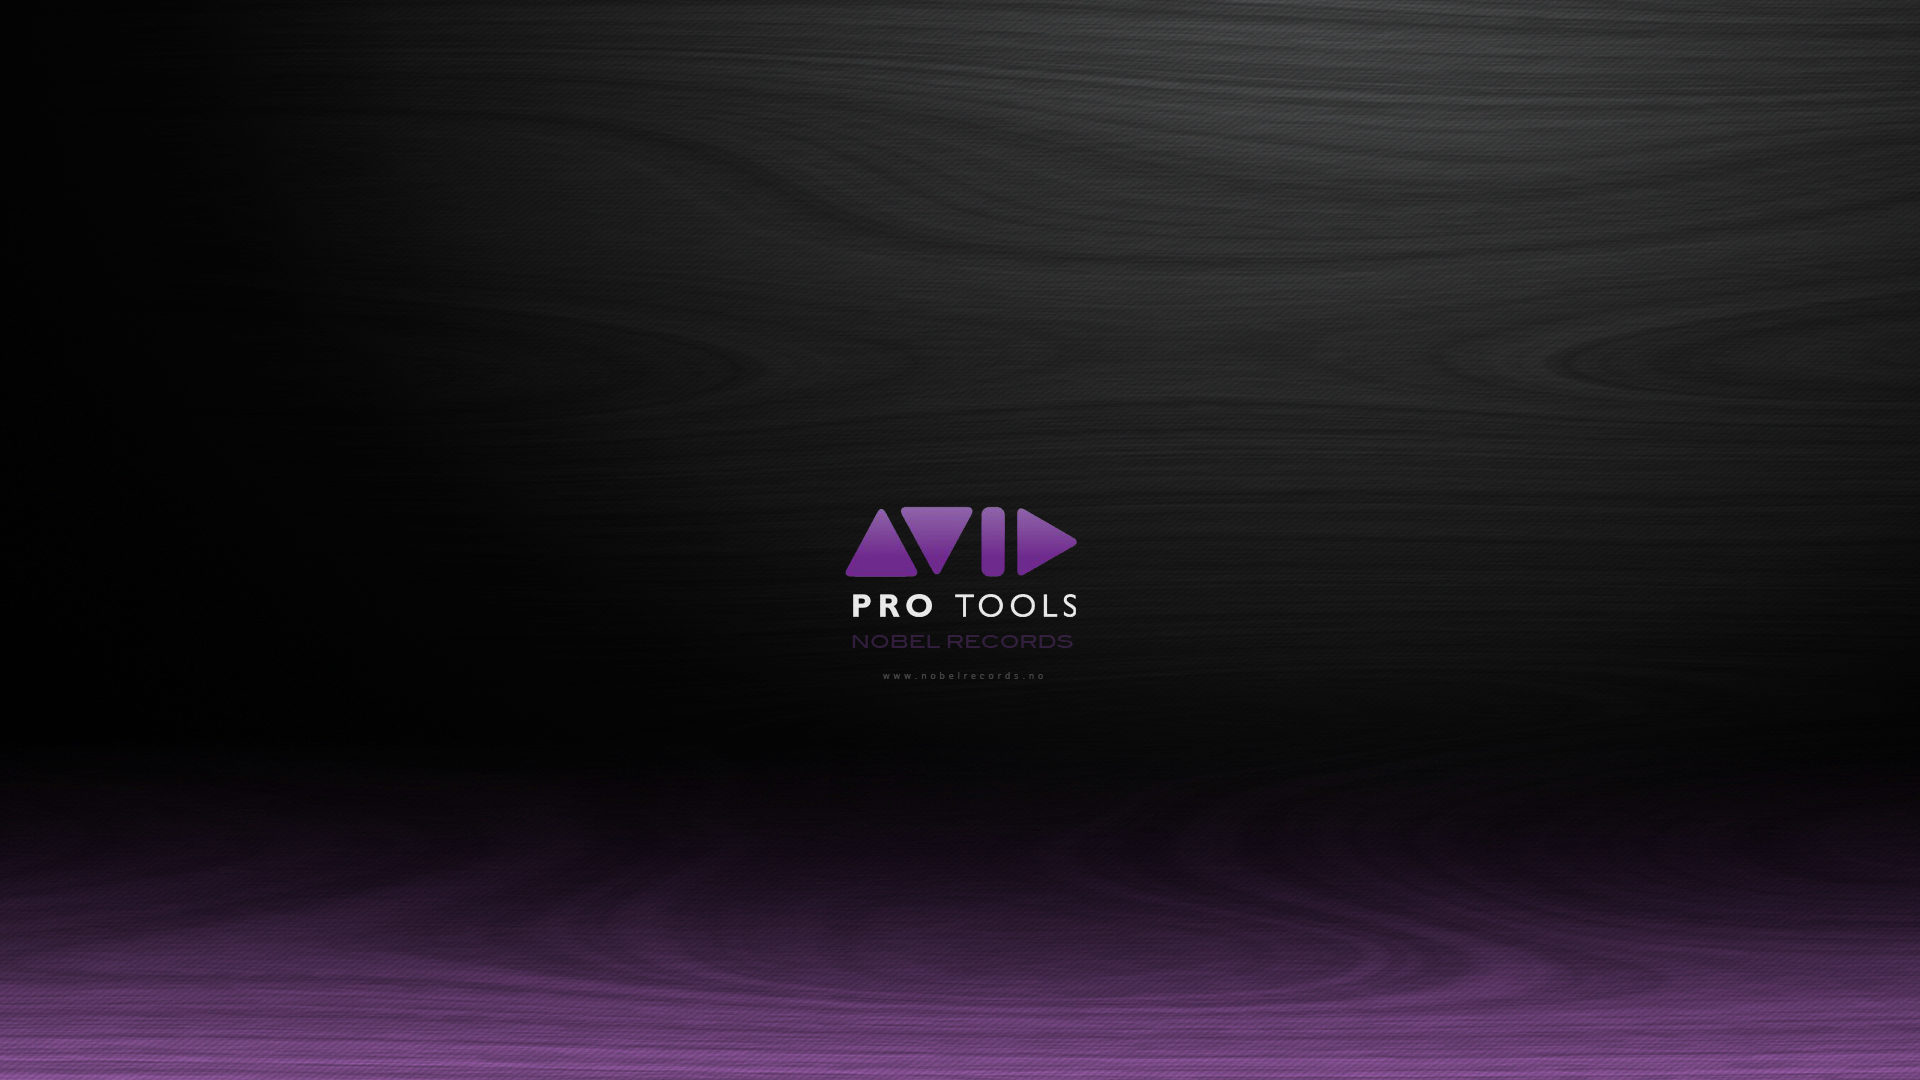 Pro Tools Wallpaper